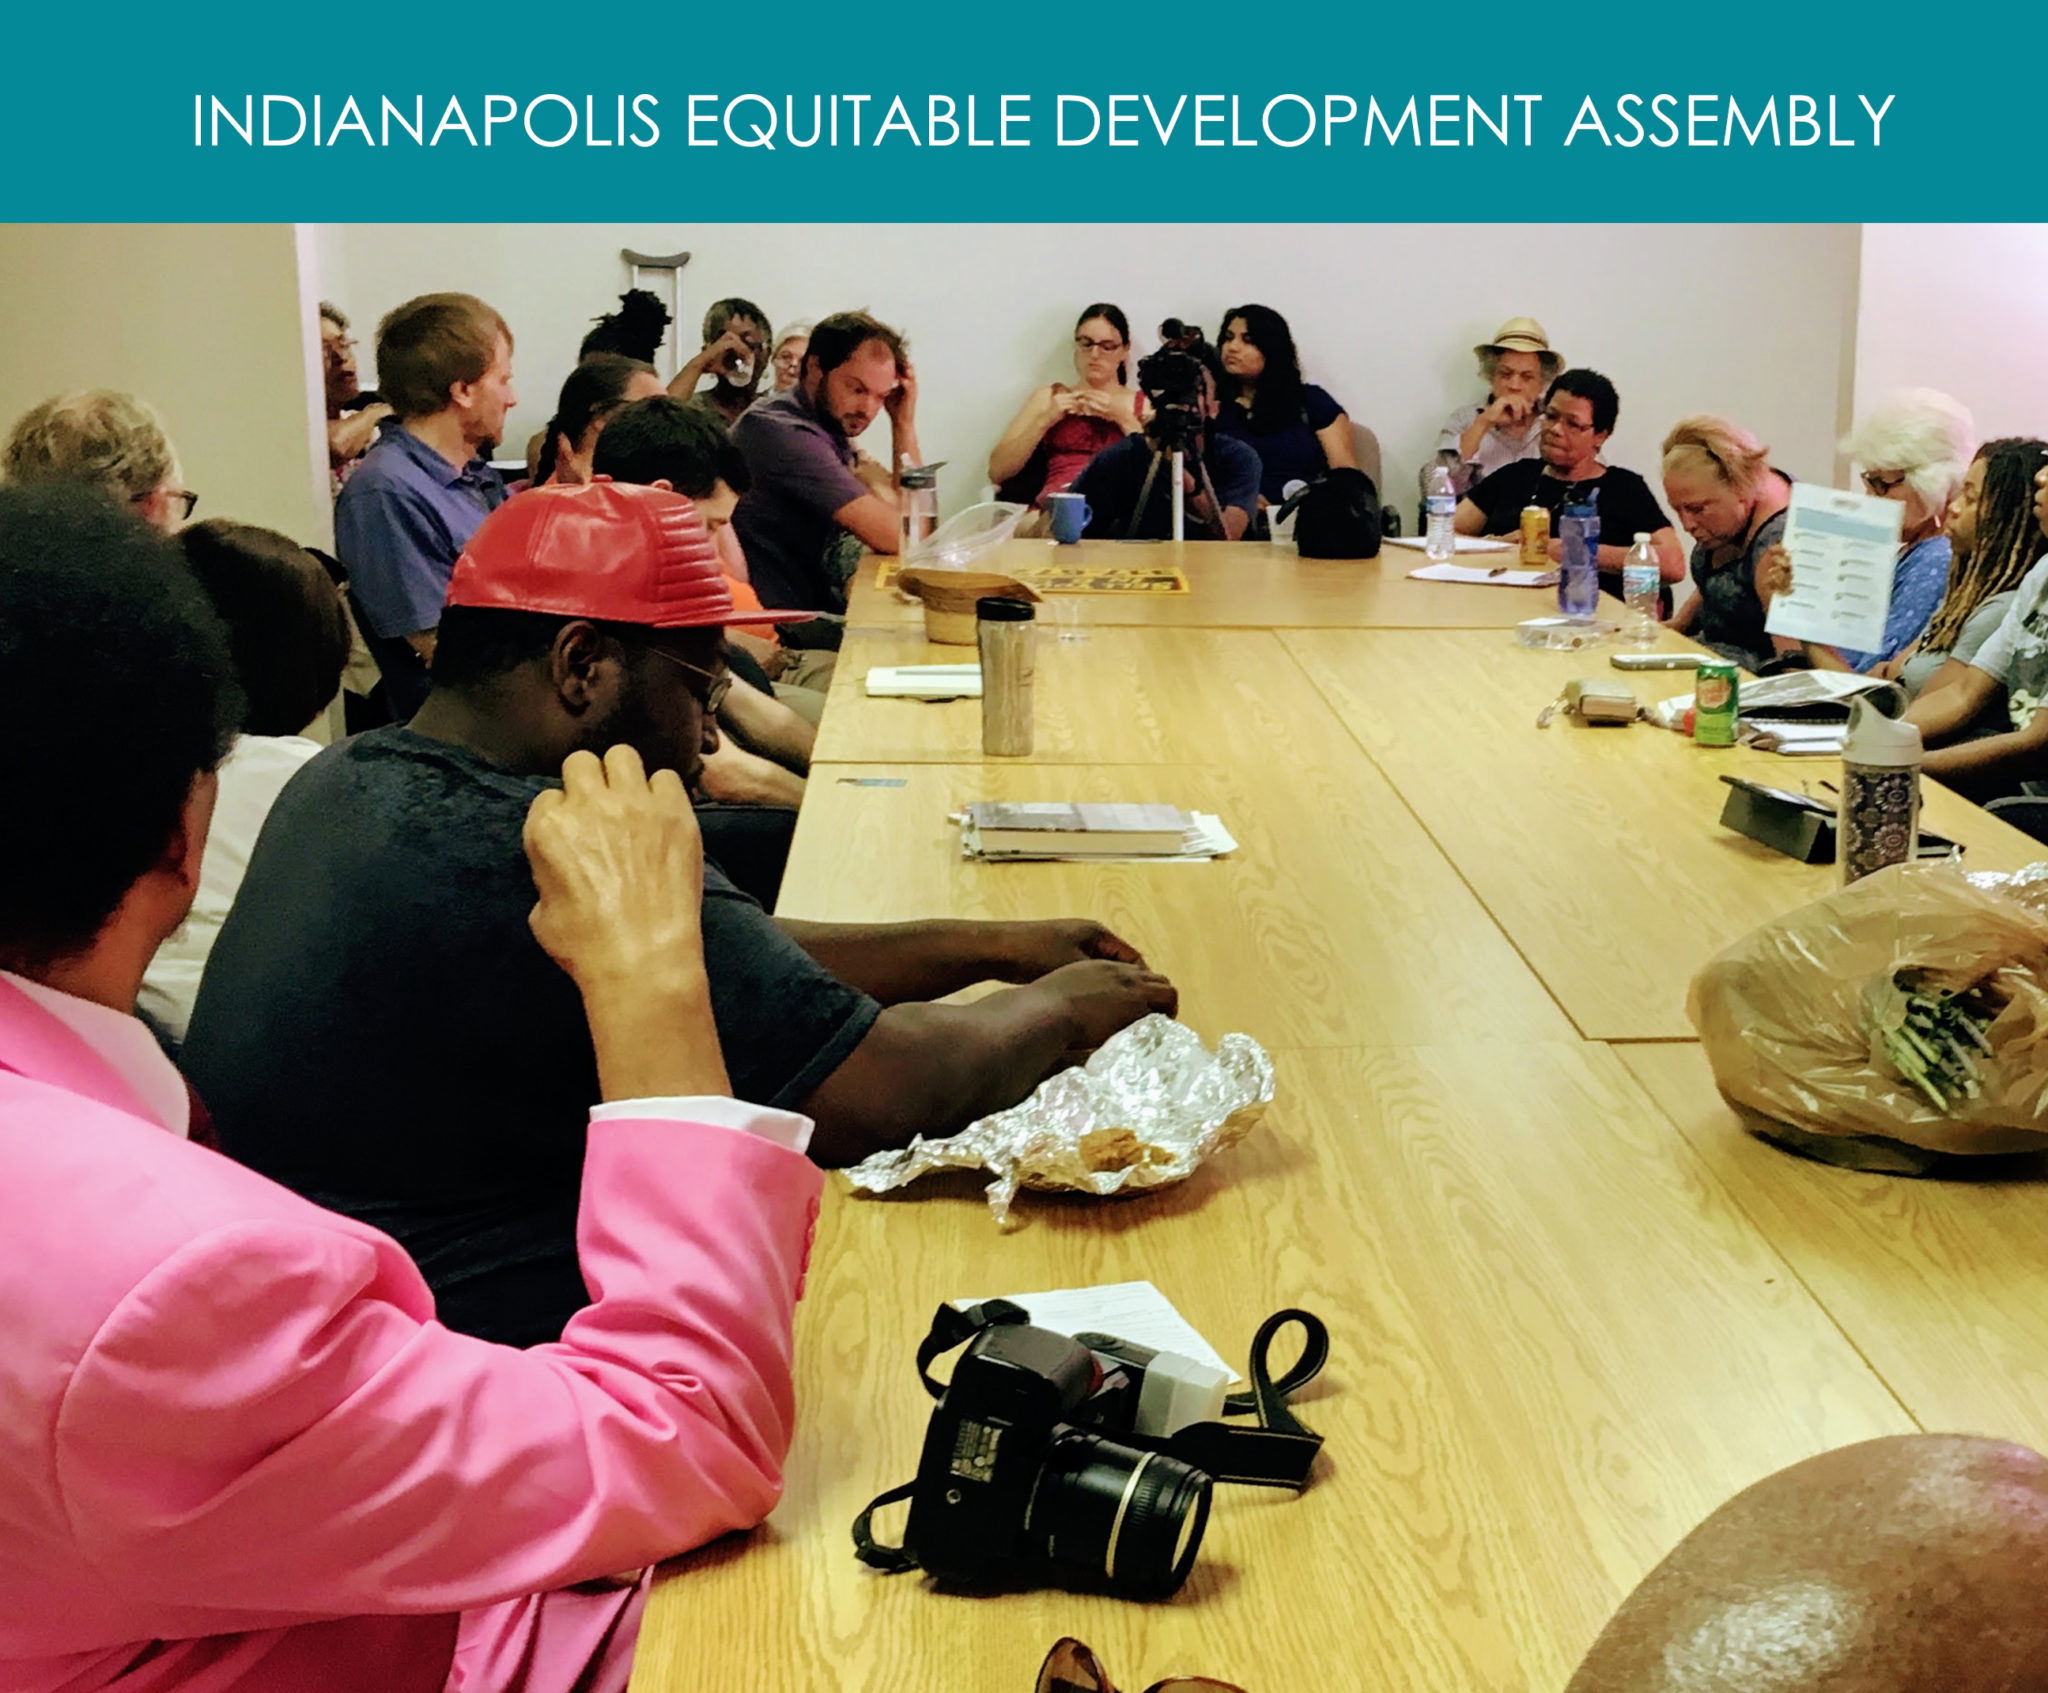 Indianapolis Equitable Development Assembly